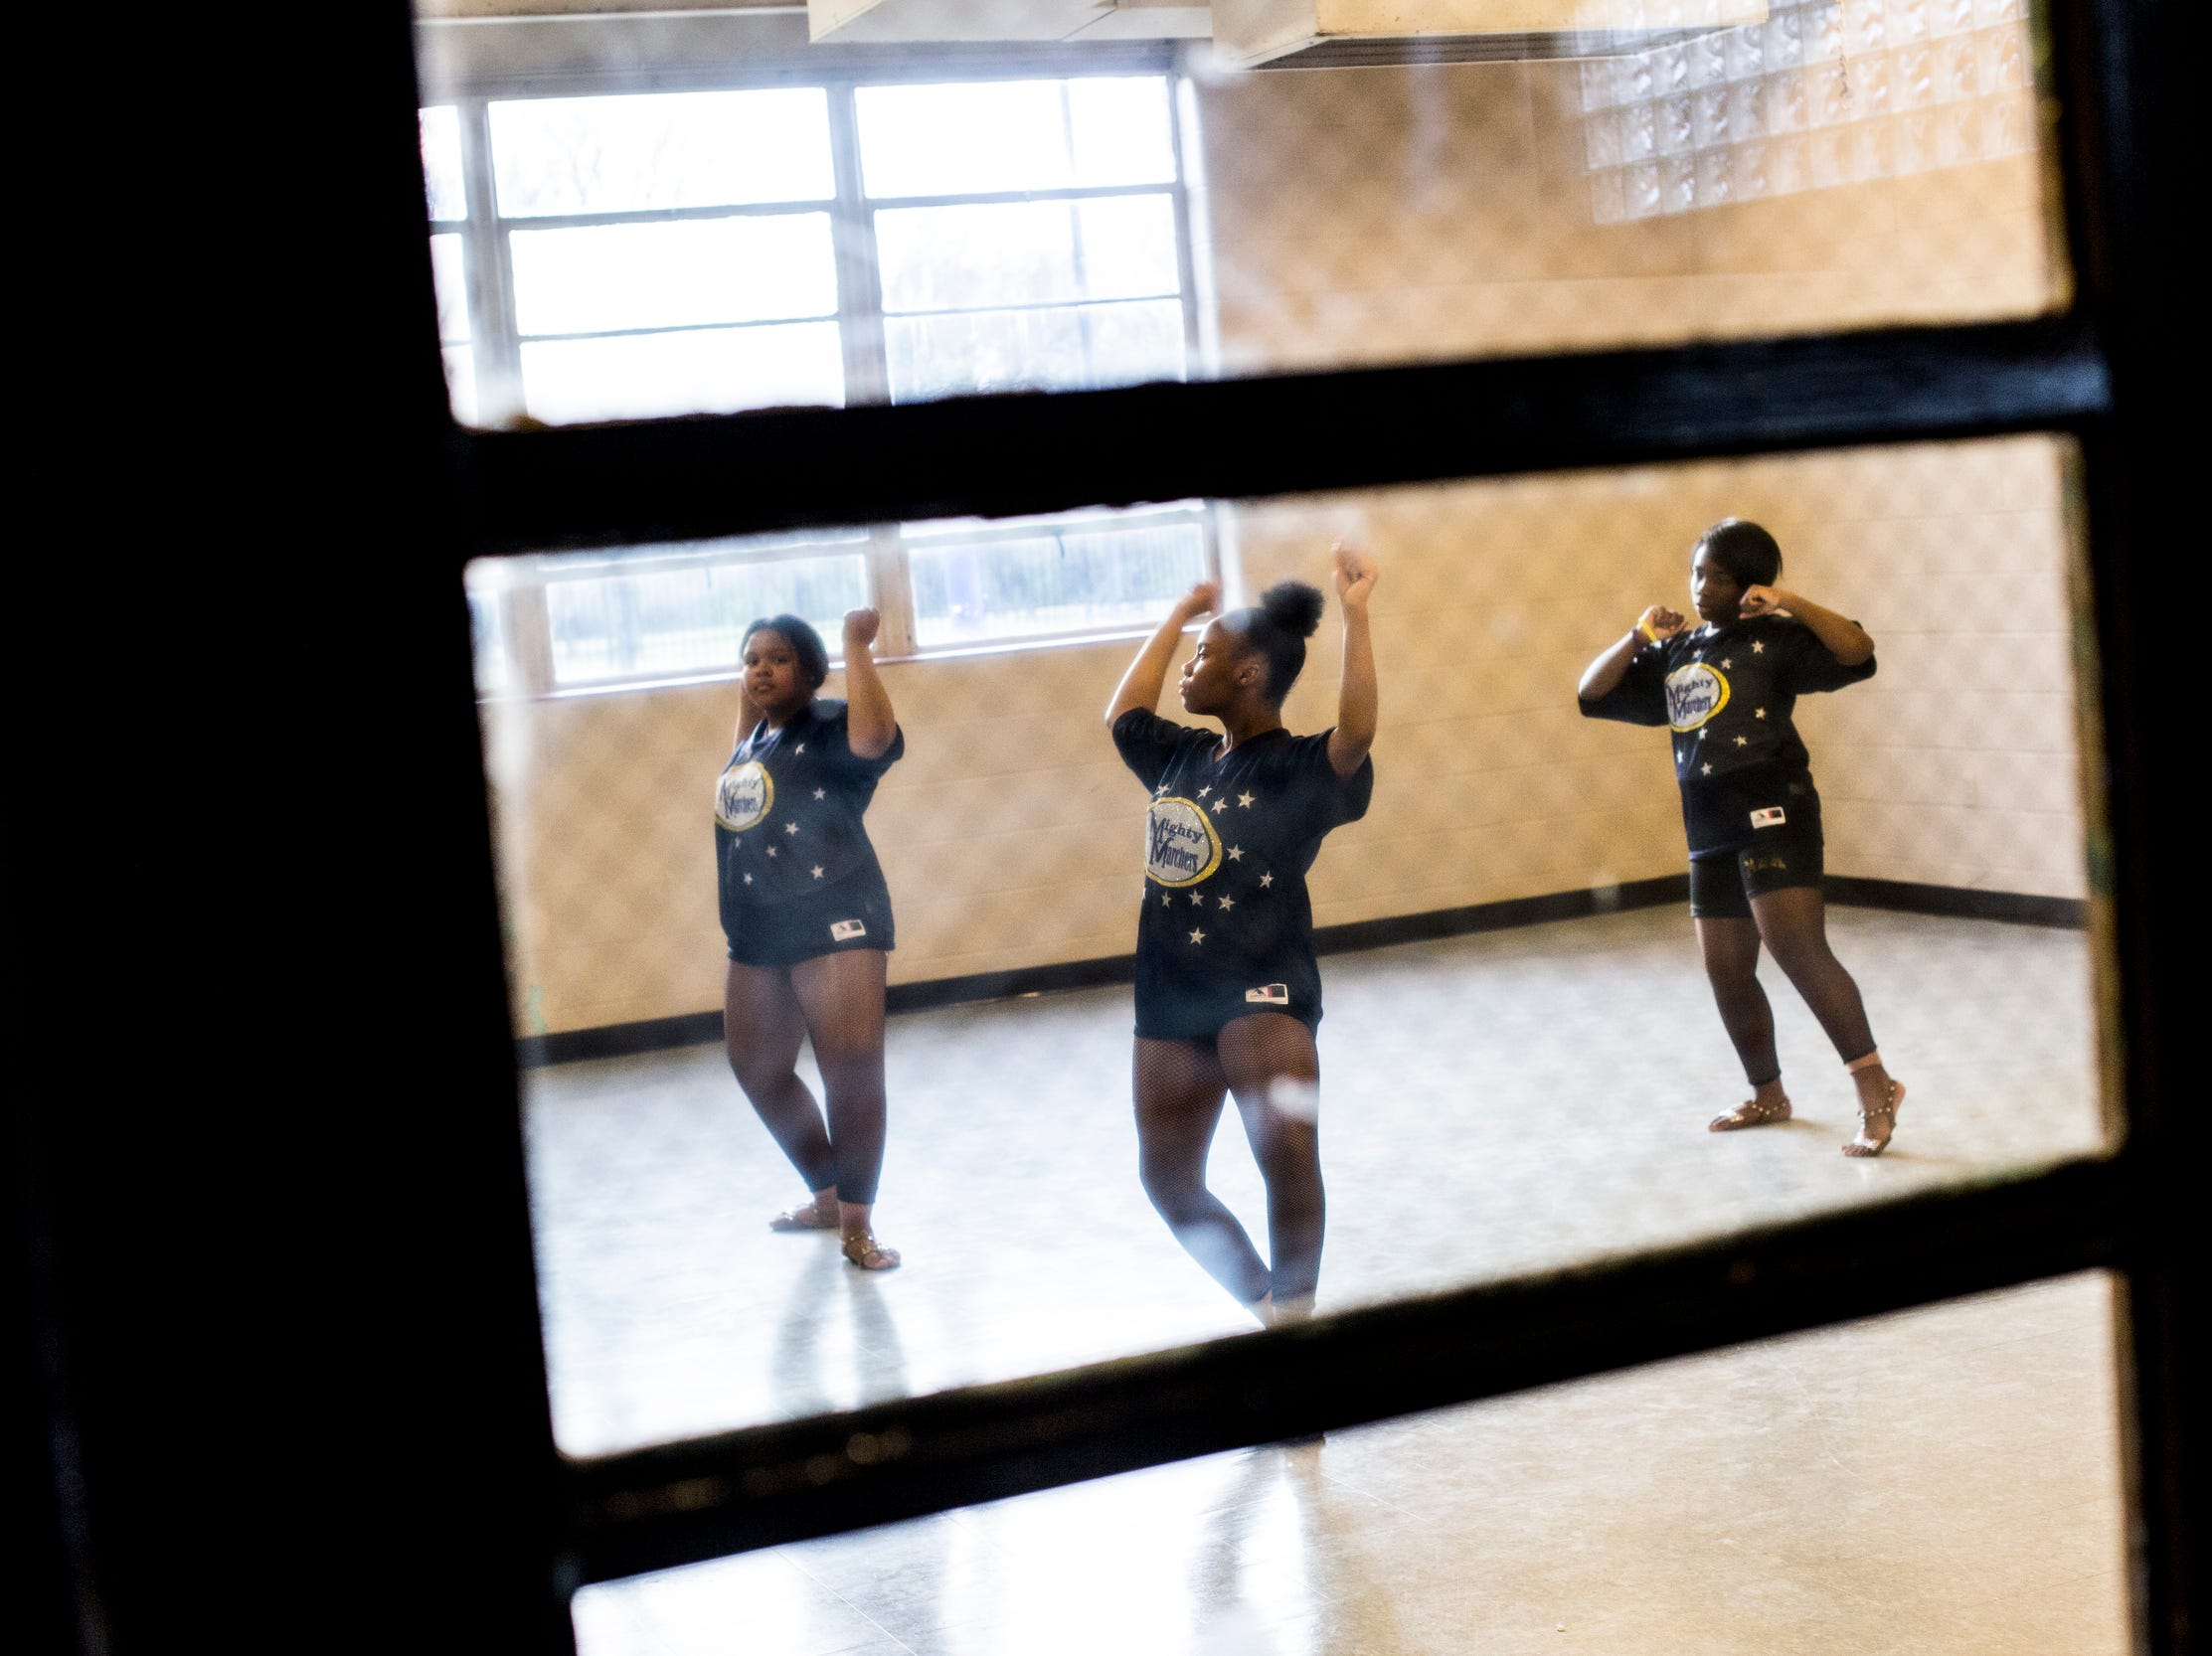 Members of the Memphis Community Youth Mighty Marchers work on a dance routine during a practice at the Ed Rice Community Center in Frayser on March 28, 2019.